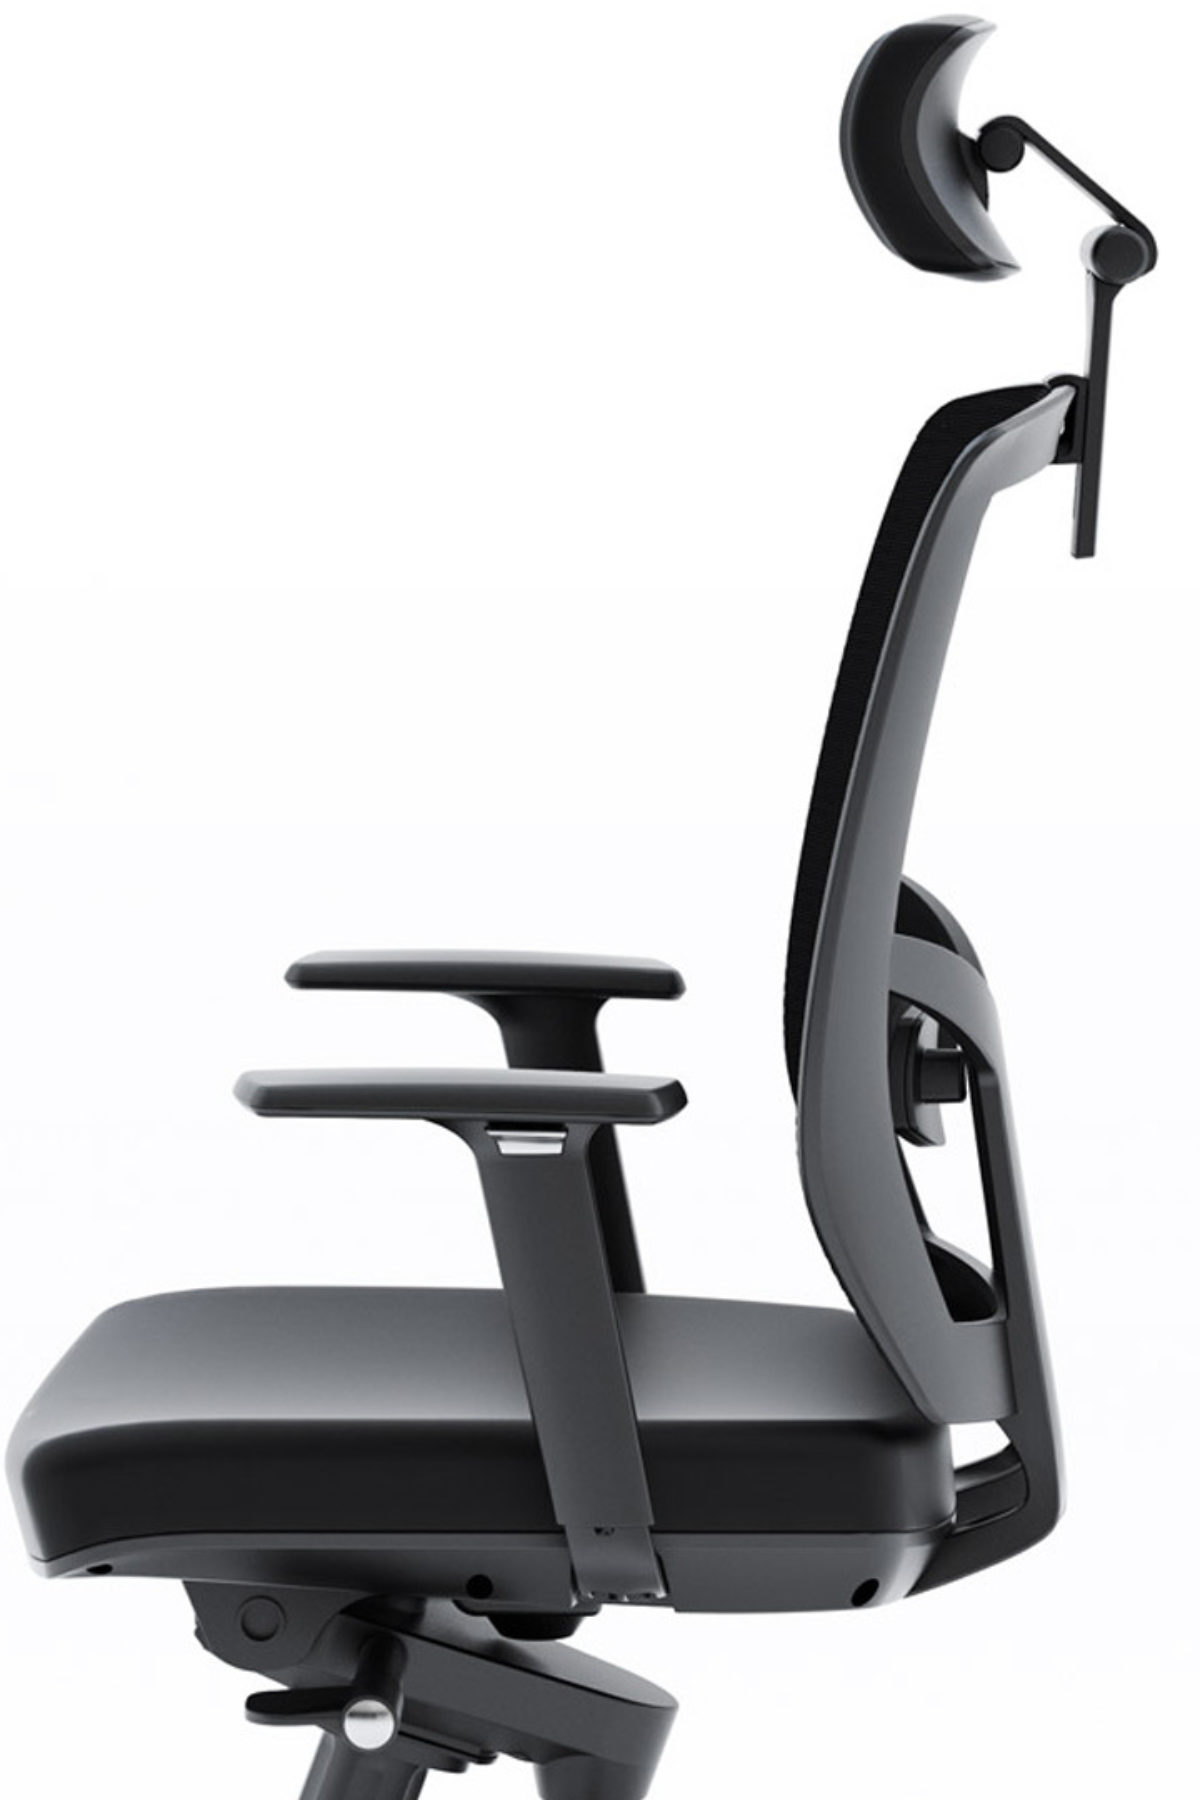 The fully adjustable leather Task Chair by BDI